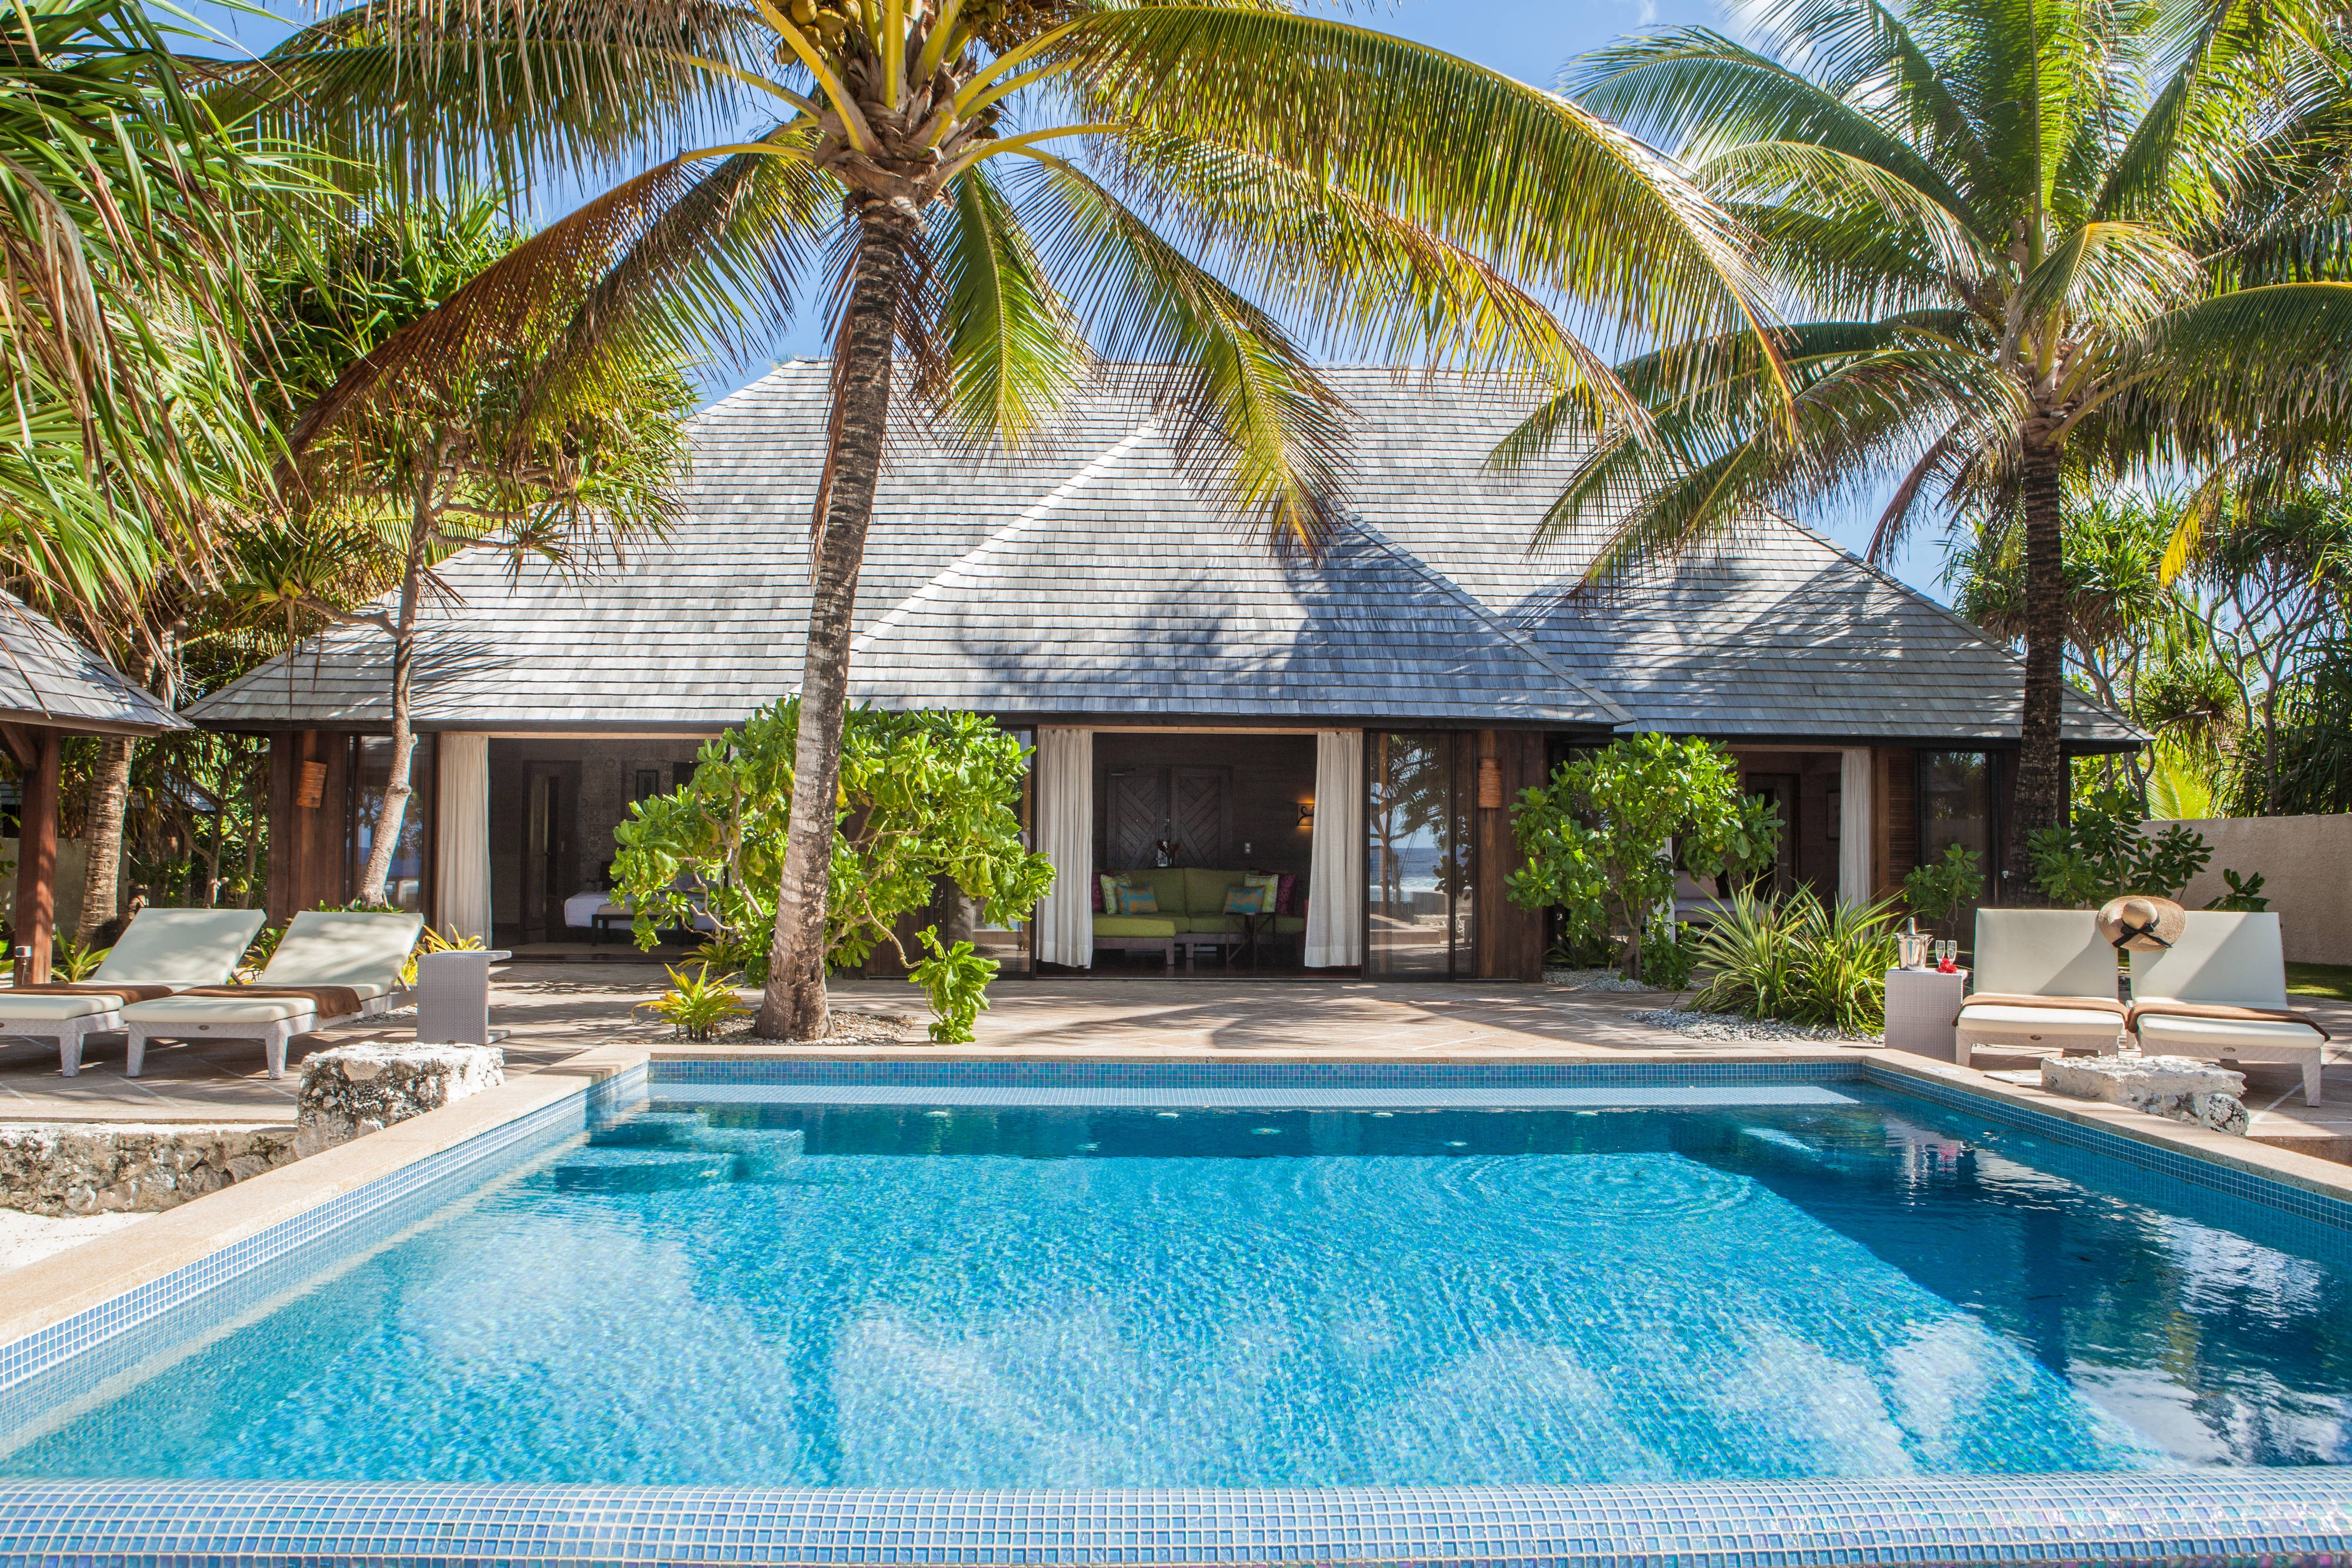 Reefside Royal Garden Two-Bedroom Villa with Pool